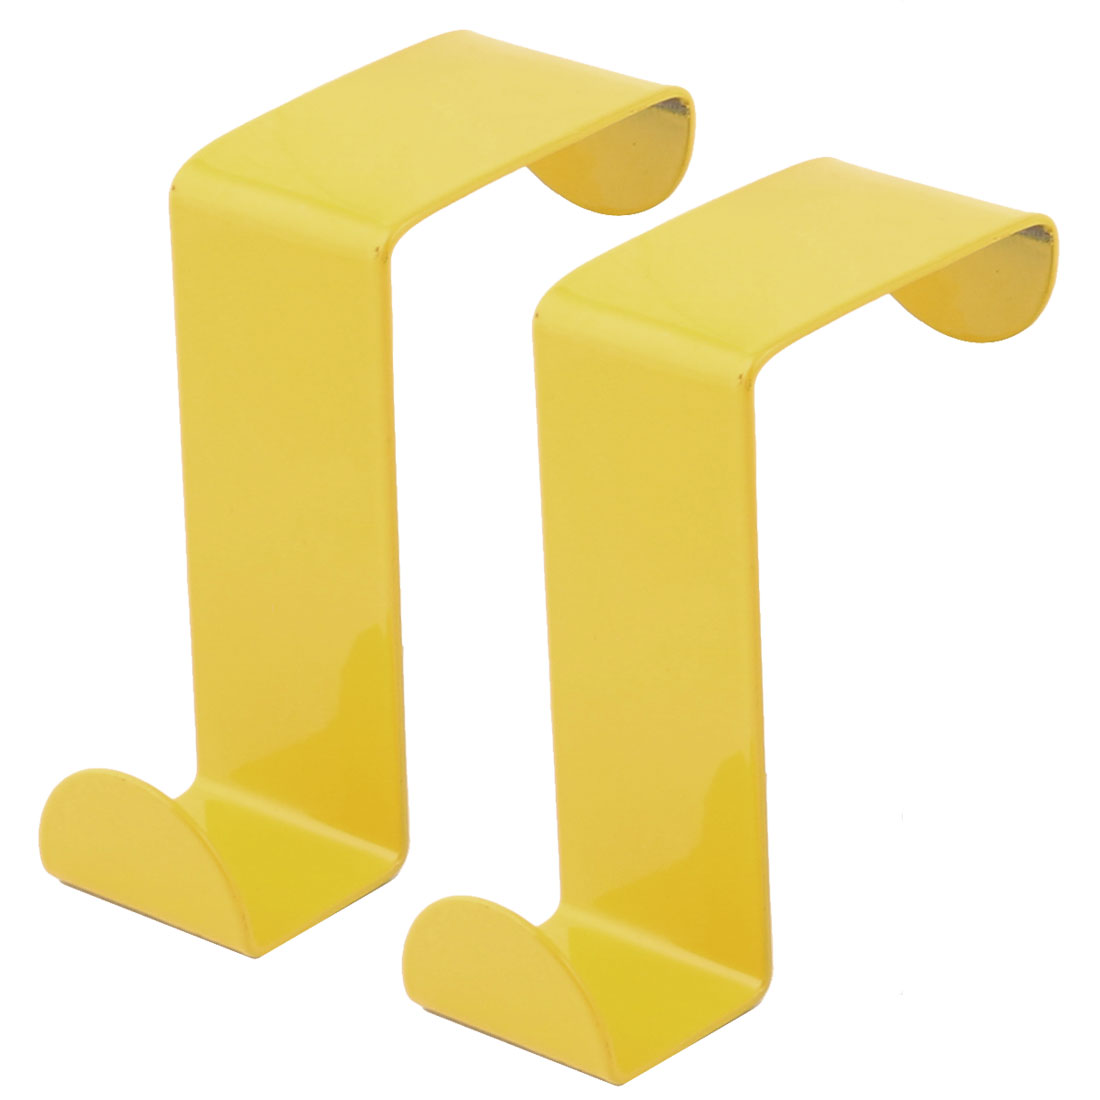 Household Metal Z Shaped Over Door Hooks Clothes Towel Hanger Holder Yellow 2 Pcs